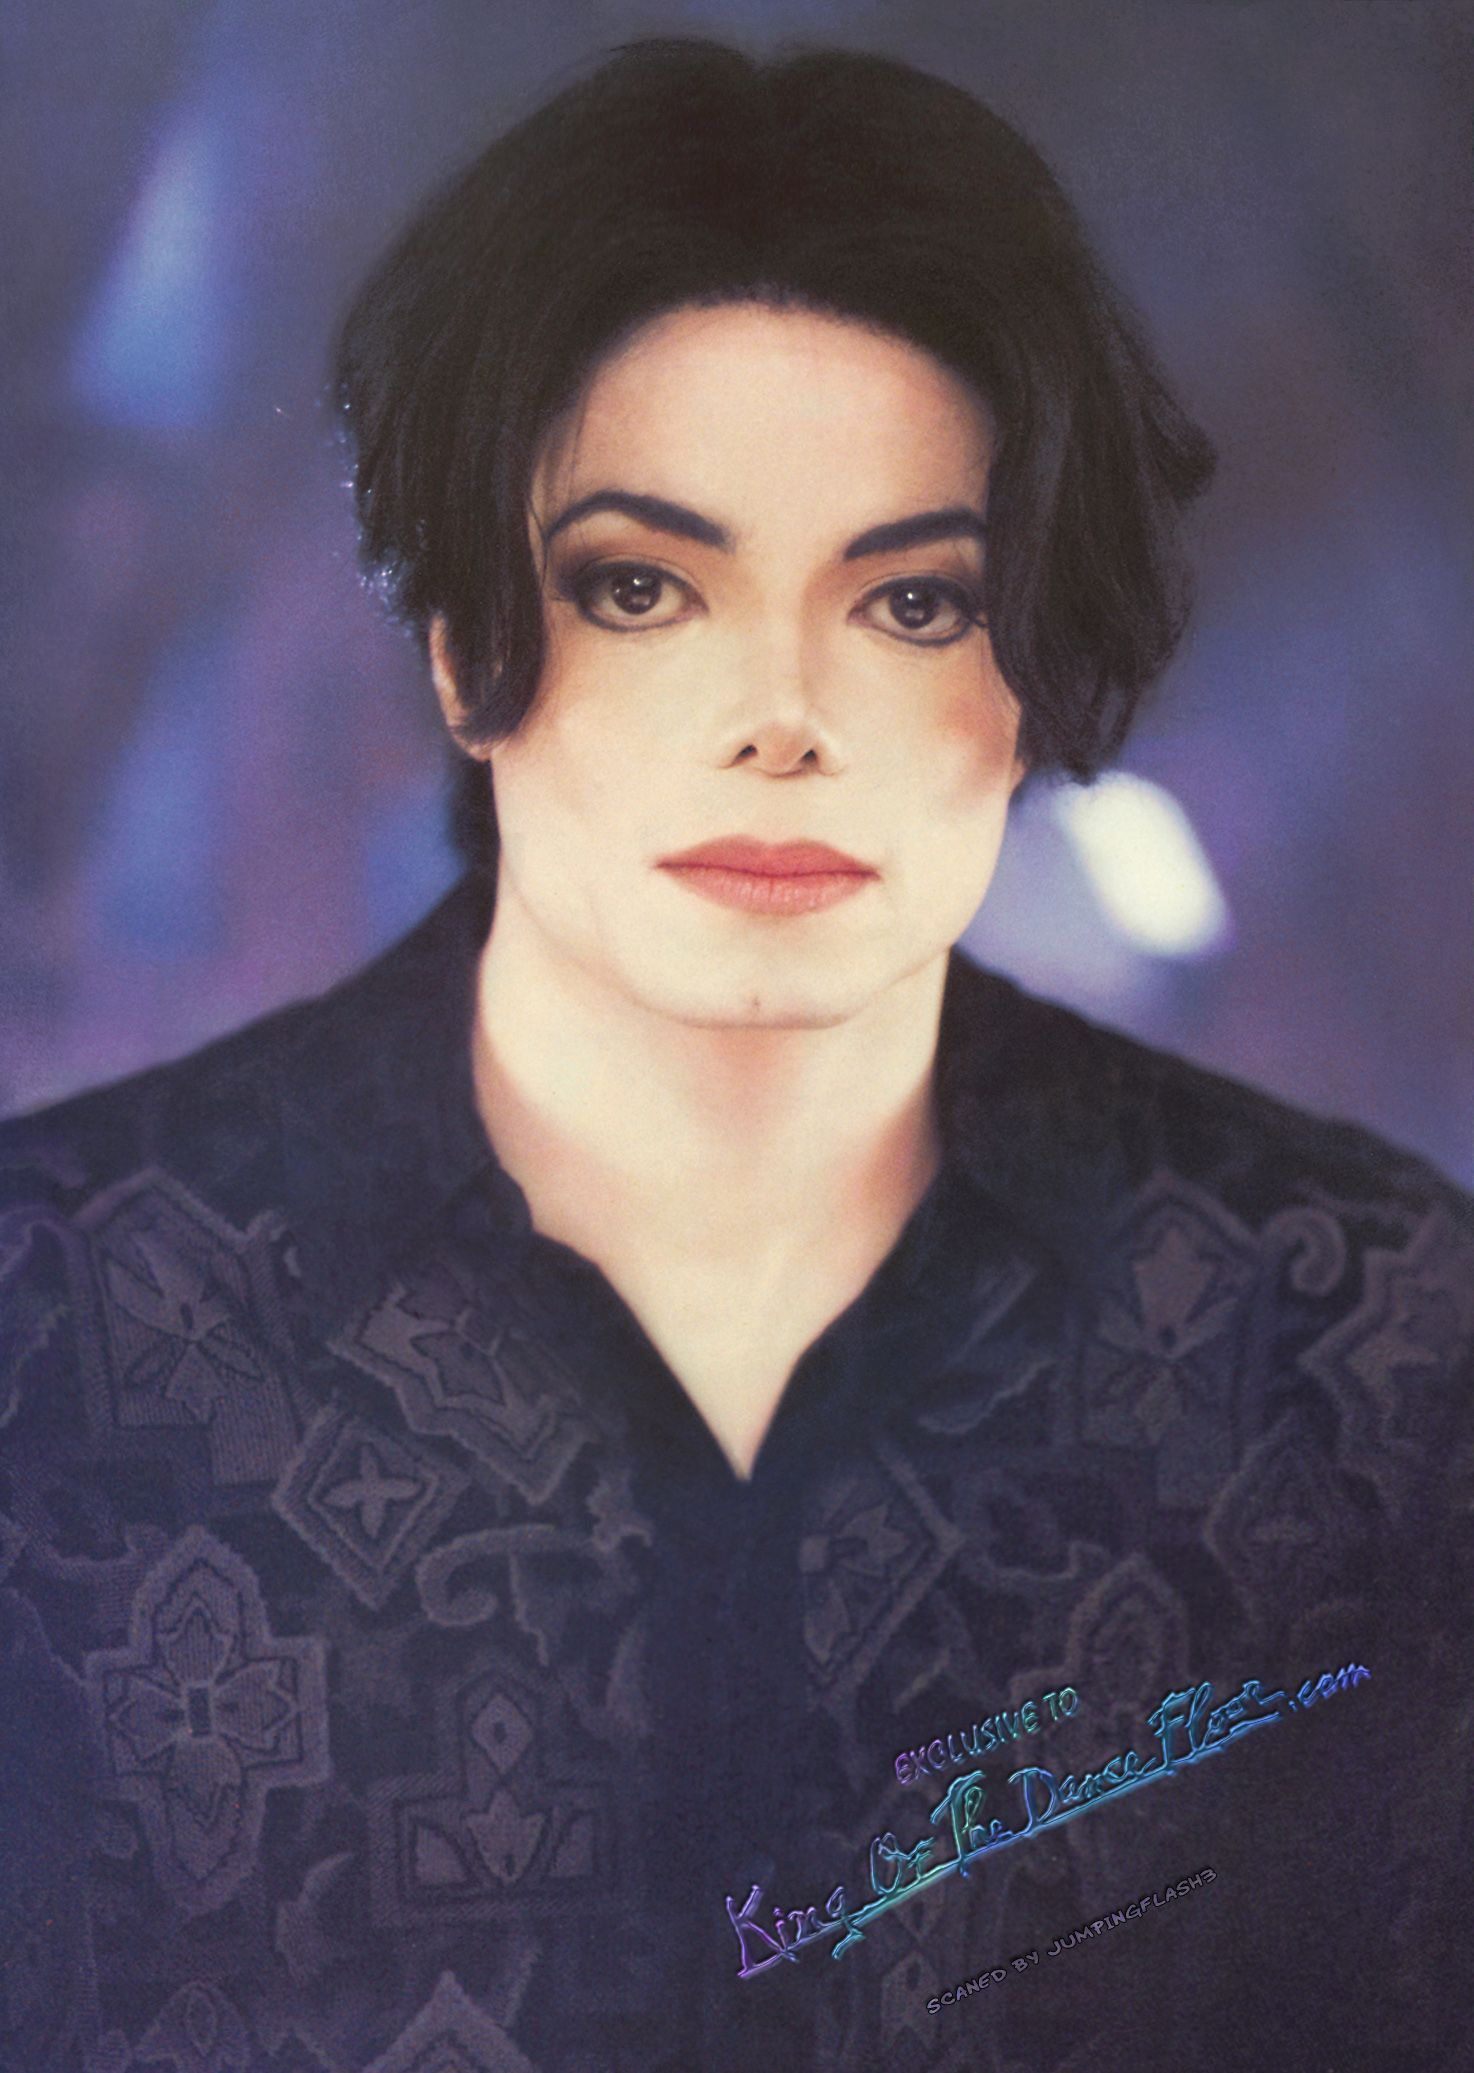 You Are Not Alone Michael Jackson : alone, michael, jackson, Michael, Jackson, Photo:, Alone, Photos, Jackson,, Thriller